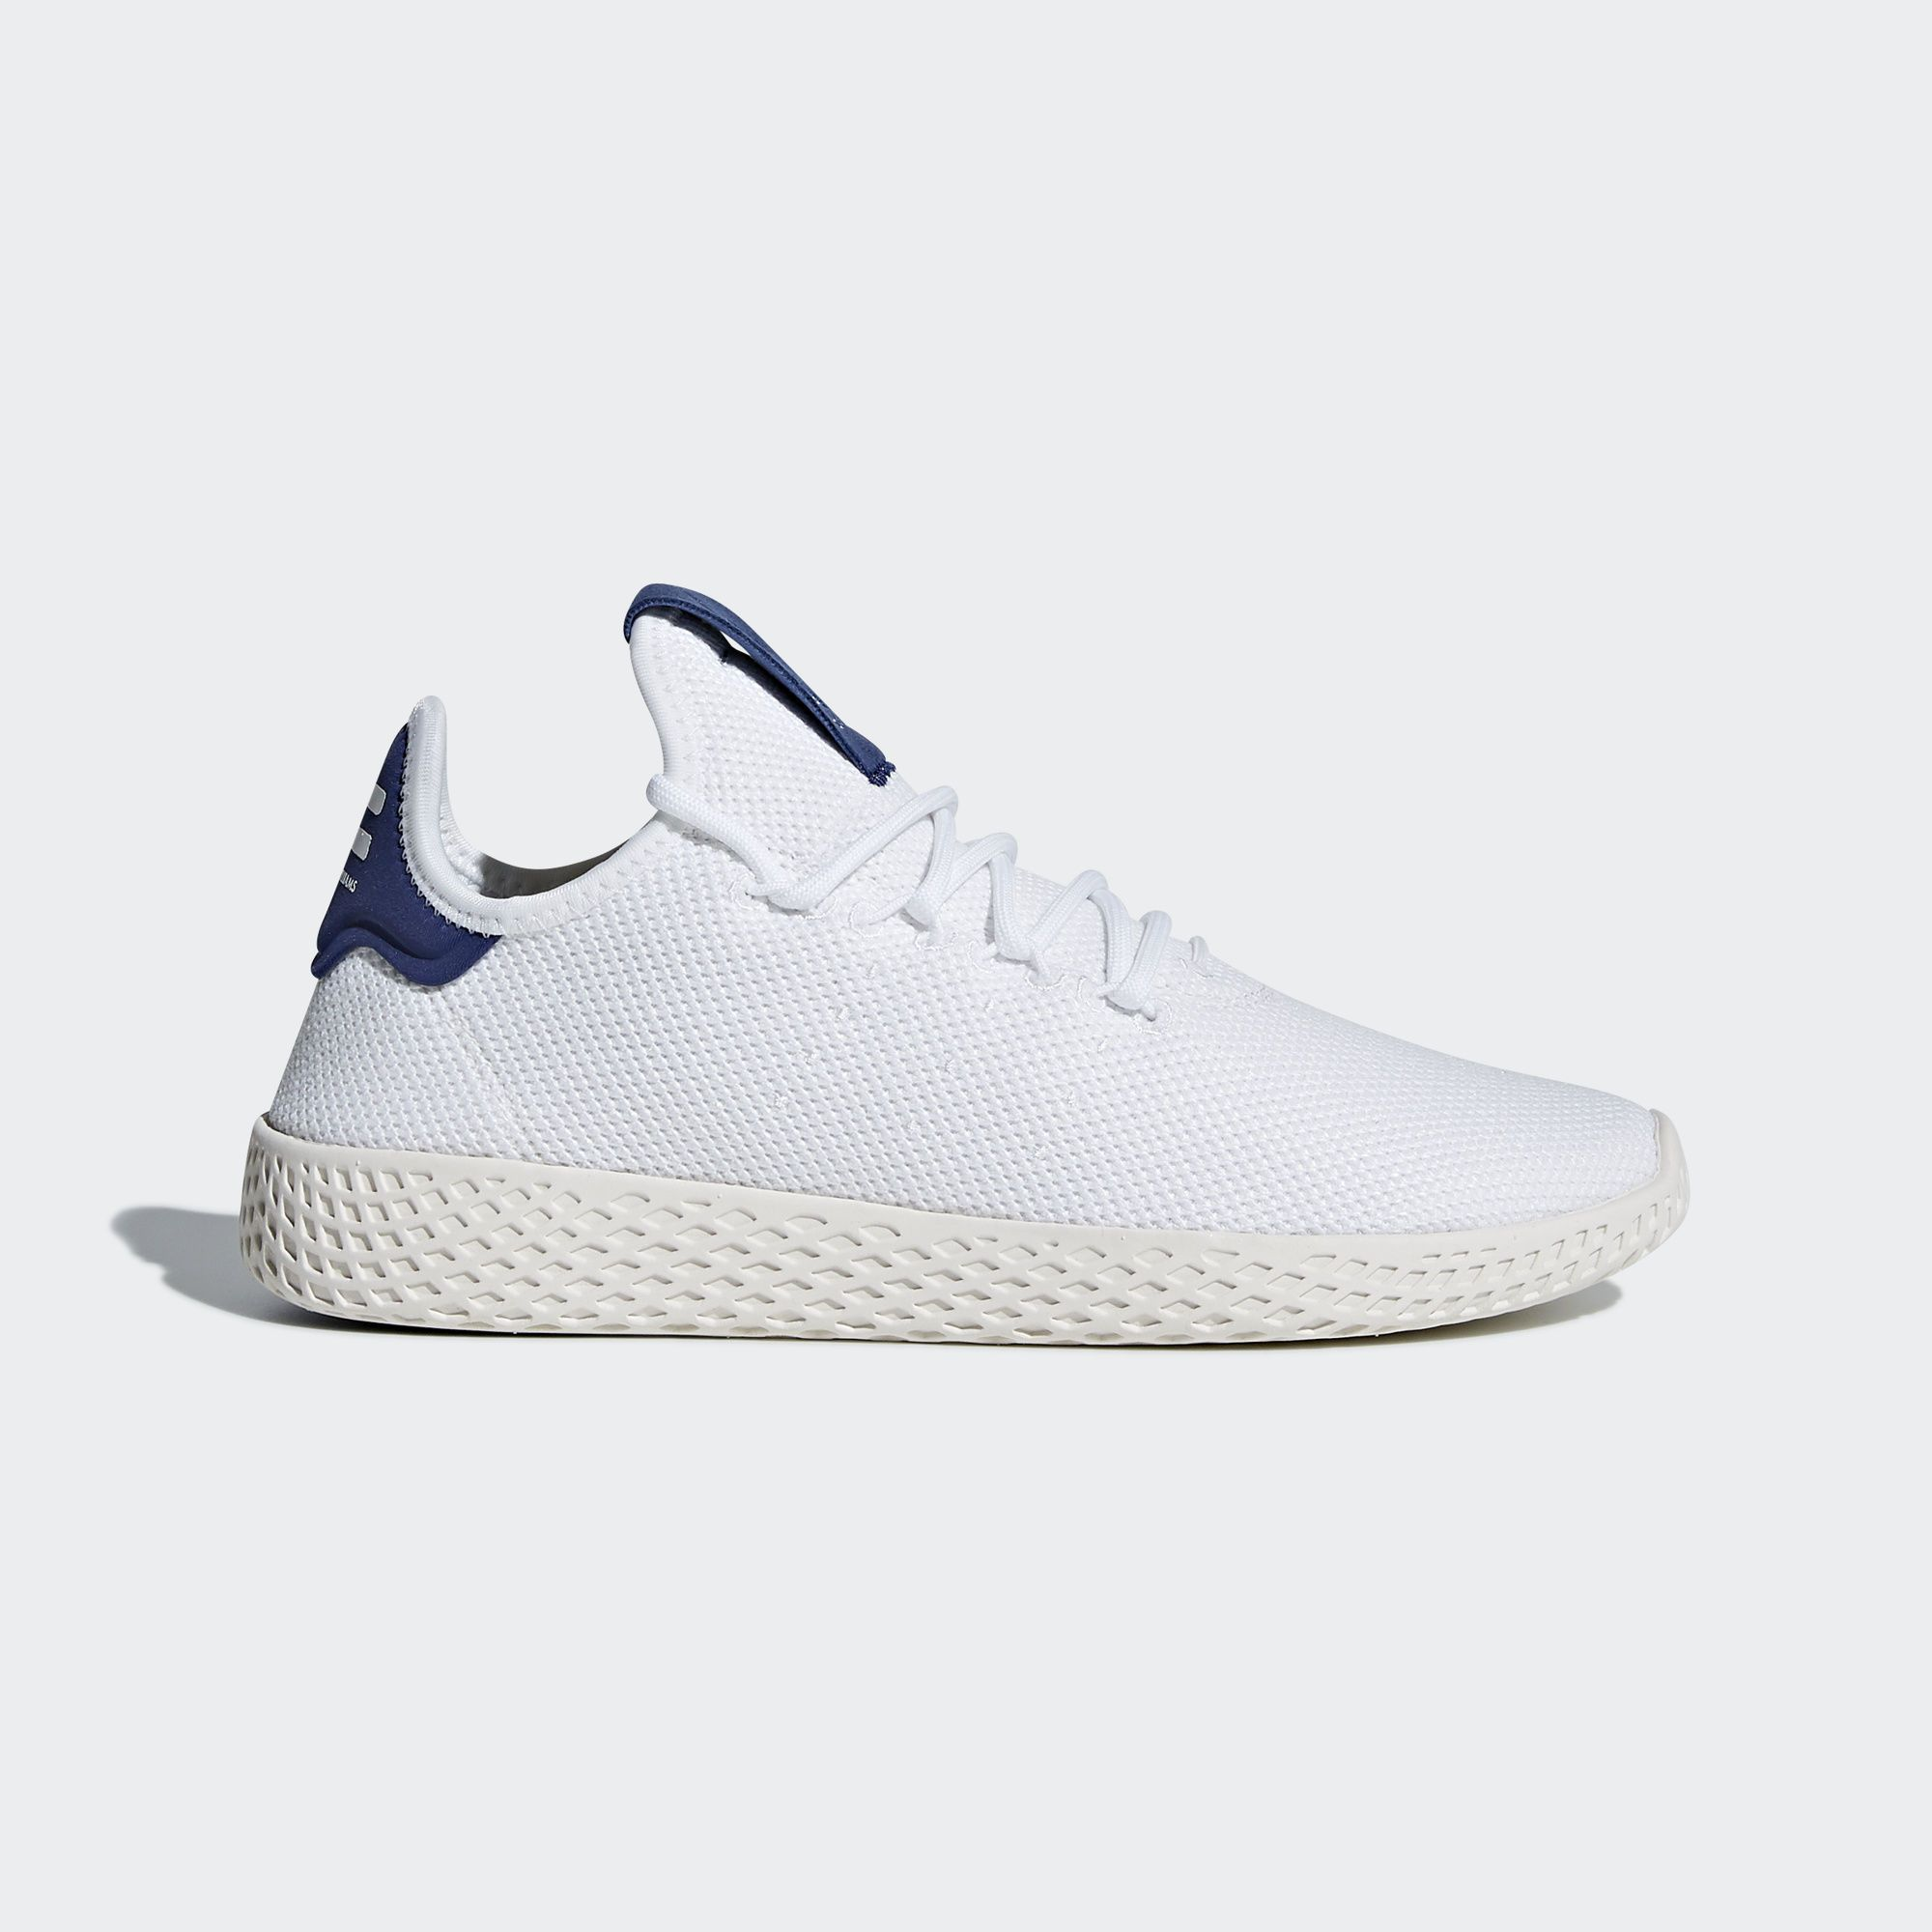 9c9af84fb Shop the Pharrell Williams Tennis Hu Shoes - White at adidas.com us! See  all the styles and colors of Pharrell Williams Tennis Hu Shoes - White at  the ...